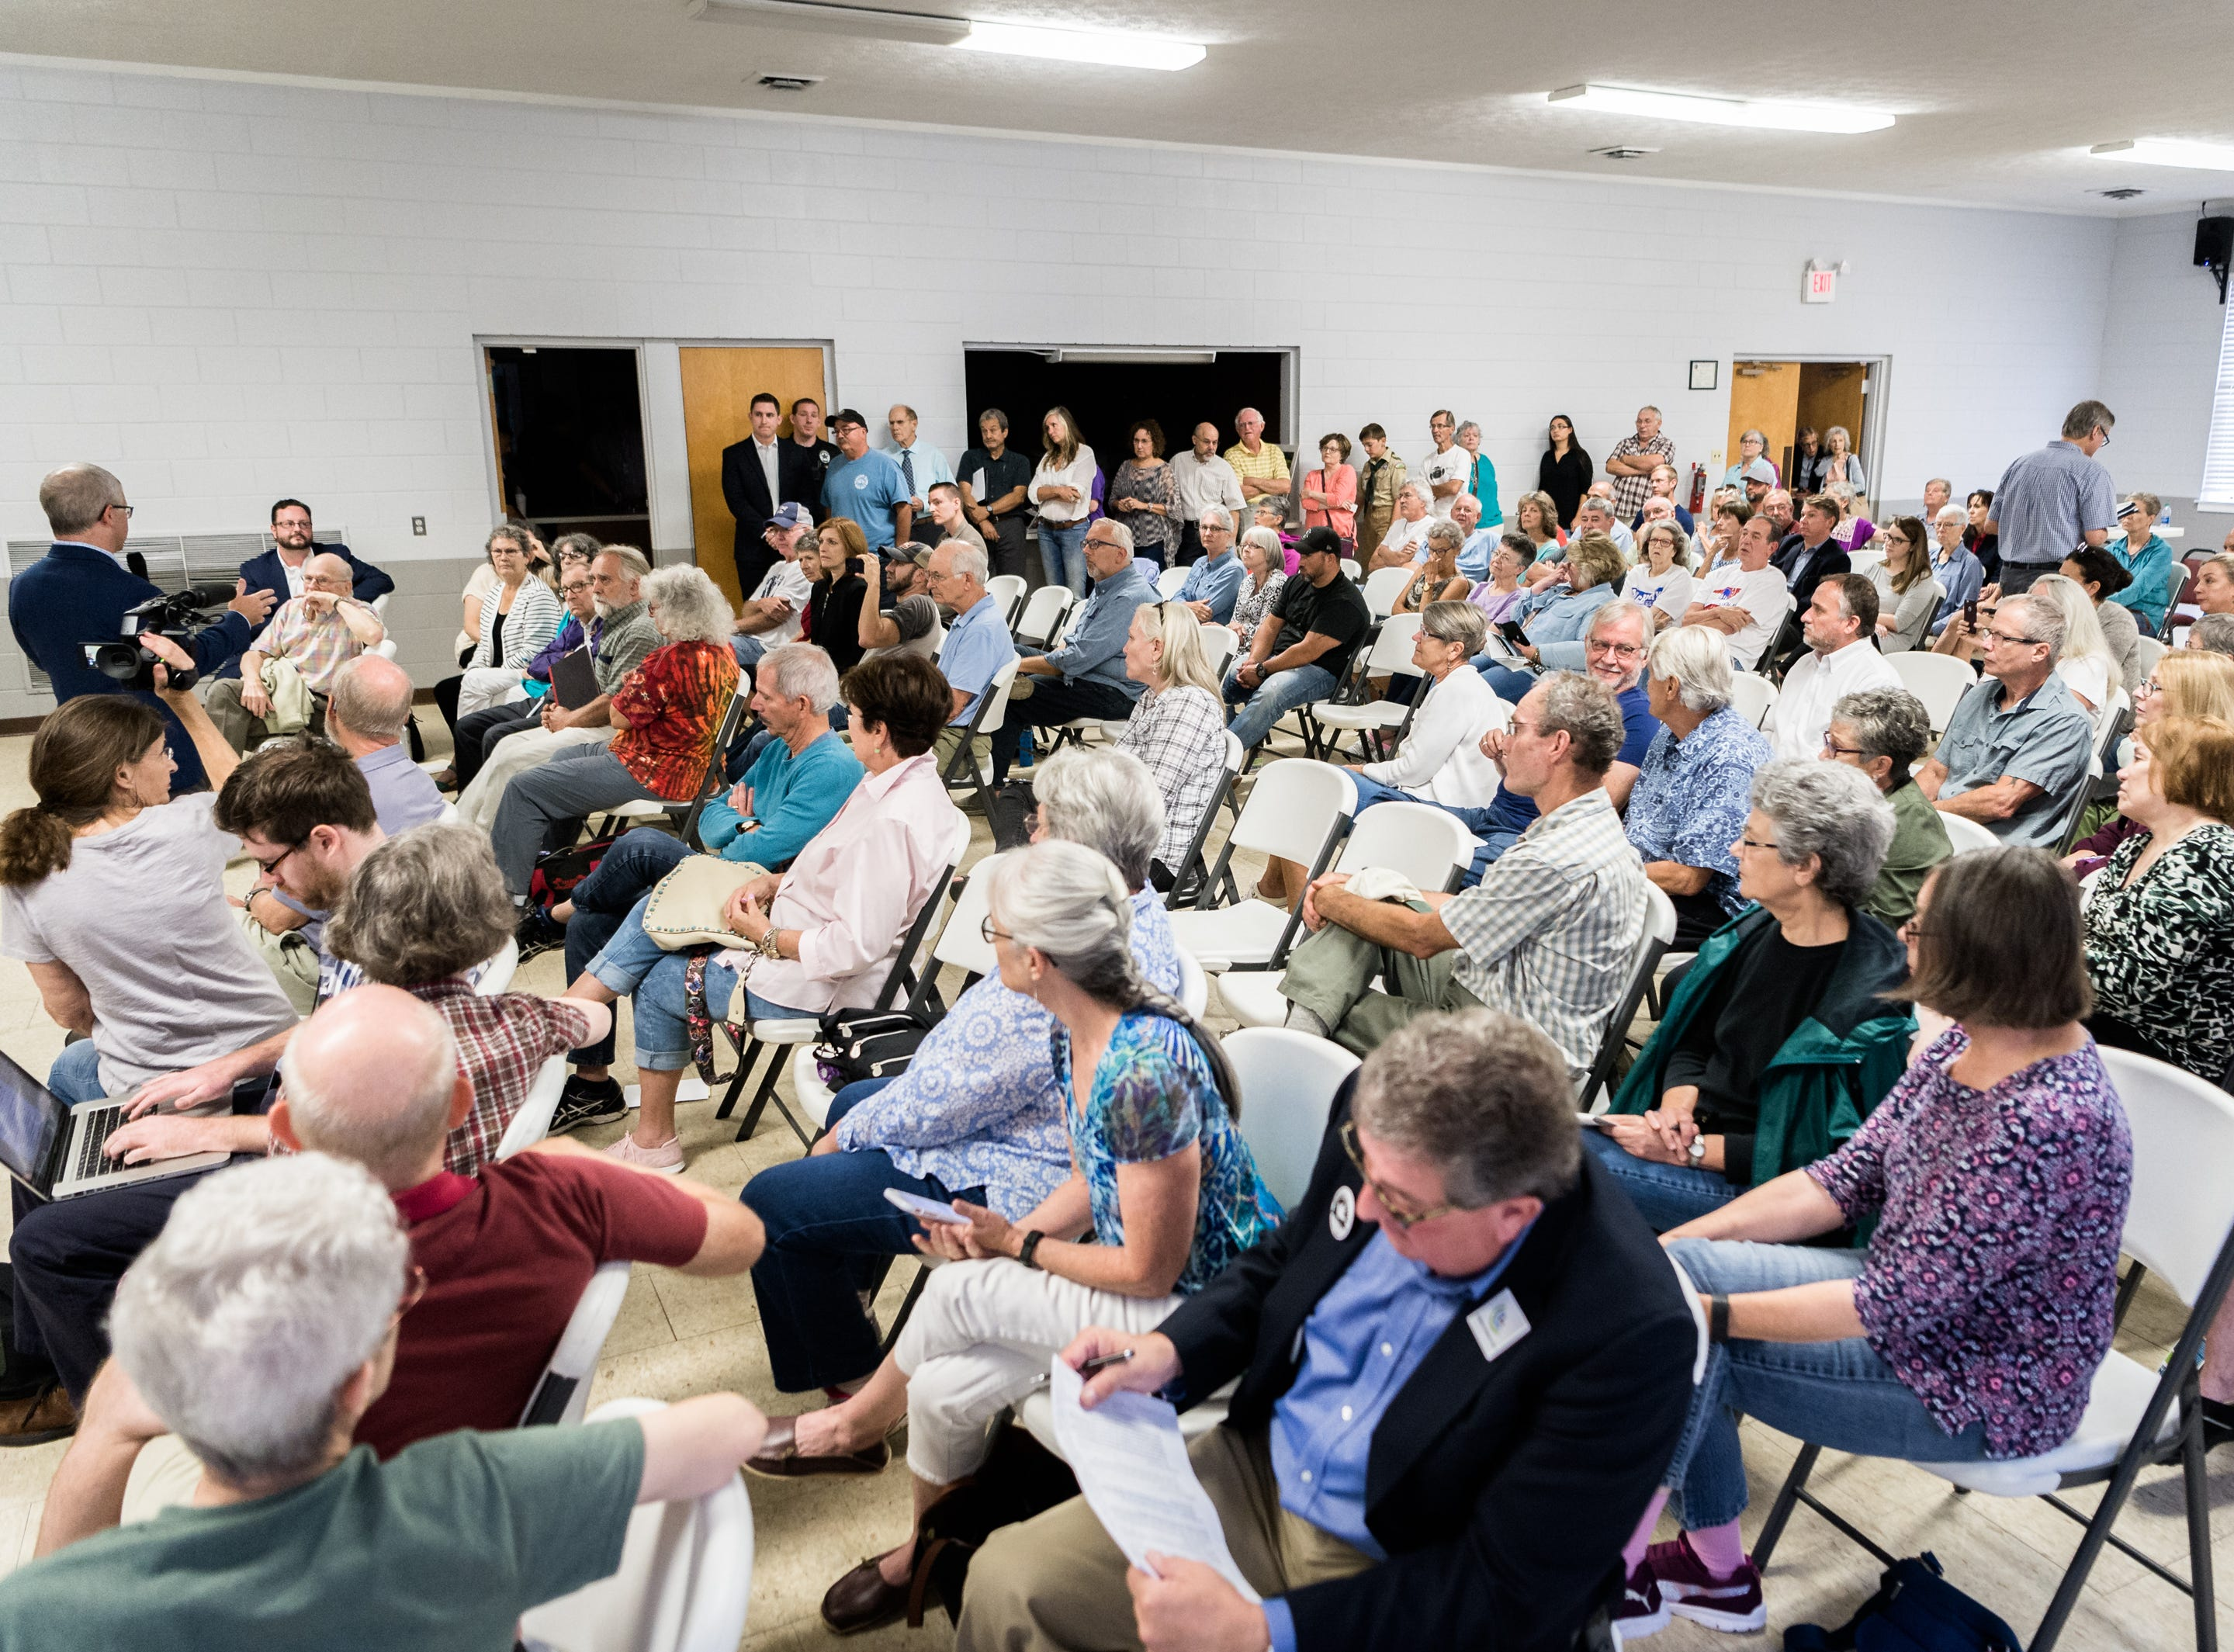 Attendees of a town hall meeting with Patrick McHenry, the U.S representative for North Carolina's 10th congressional district fill the room at the Riceville Volunteer Fire Department Wednesday, August 1, 2018.